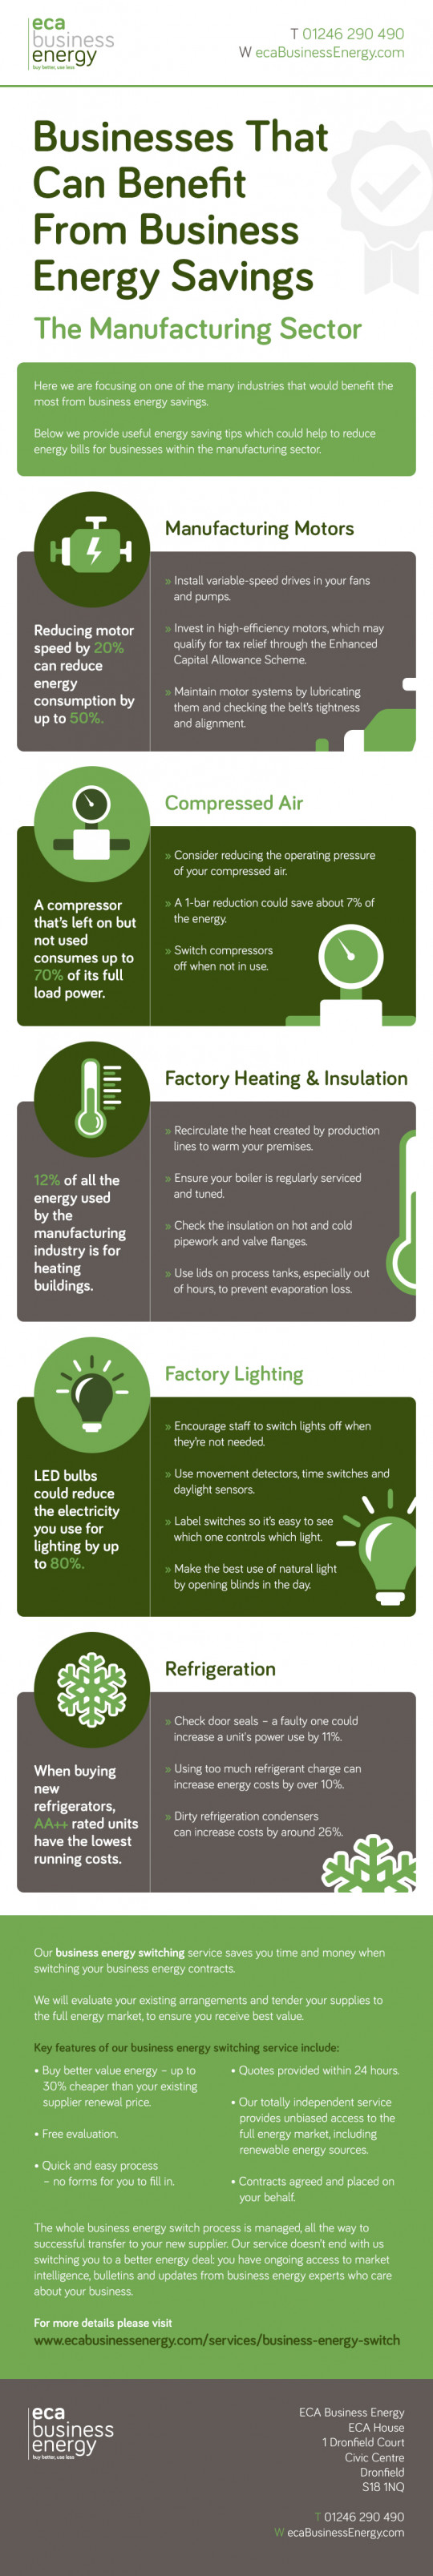 Businesses That Can Benefit From Business Energy Savings - The Manufacturing Sector